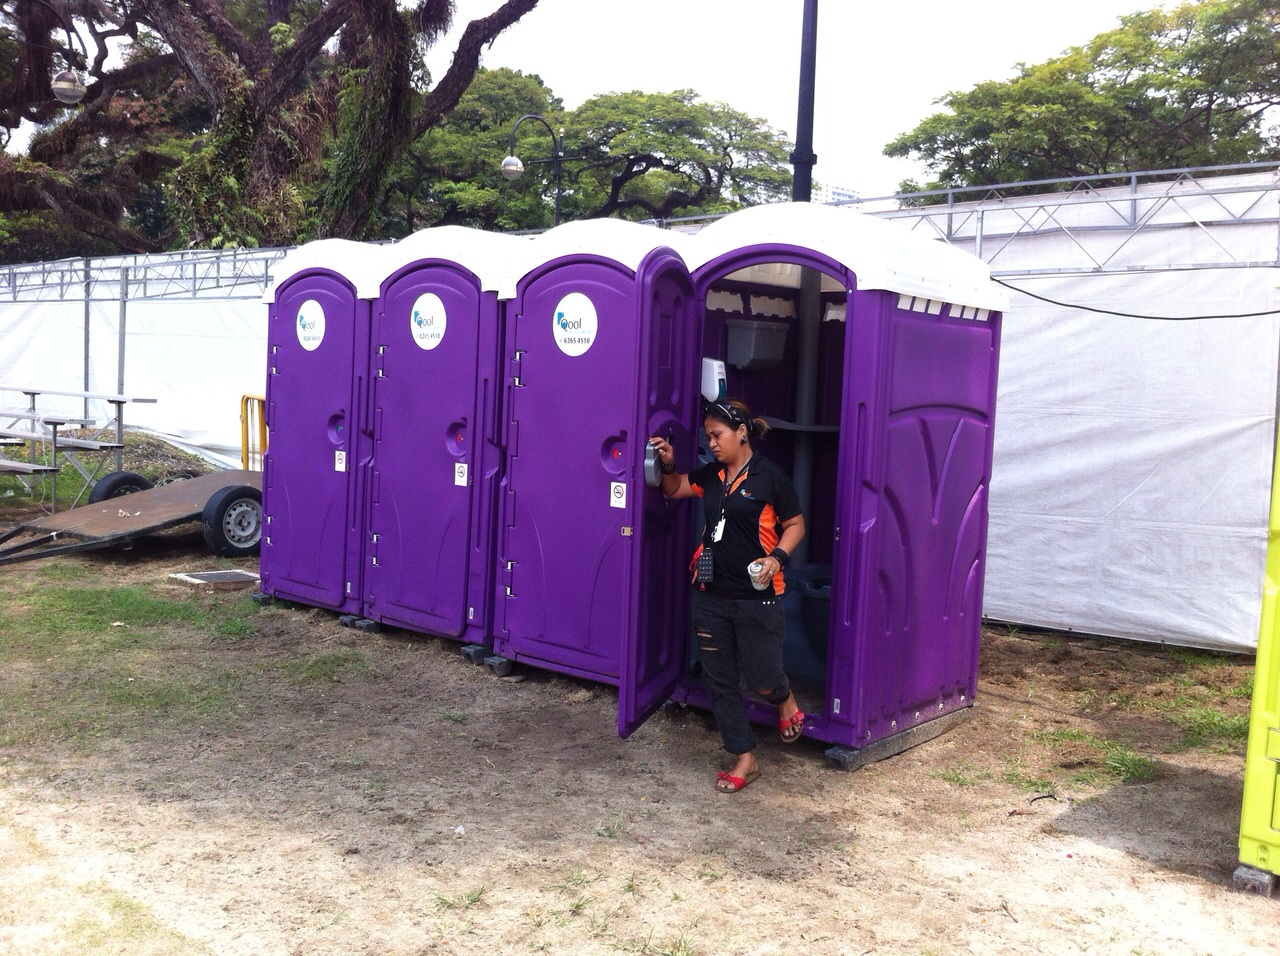 Qool Enviro portable toilet in rugby 7s 4